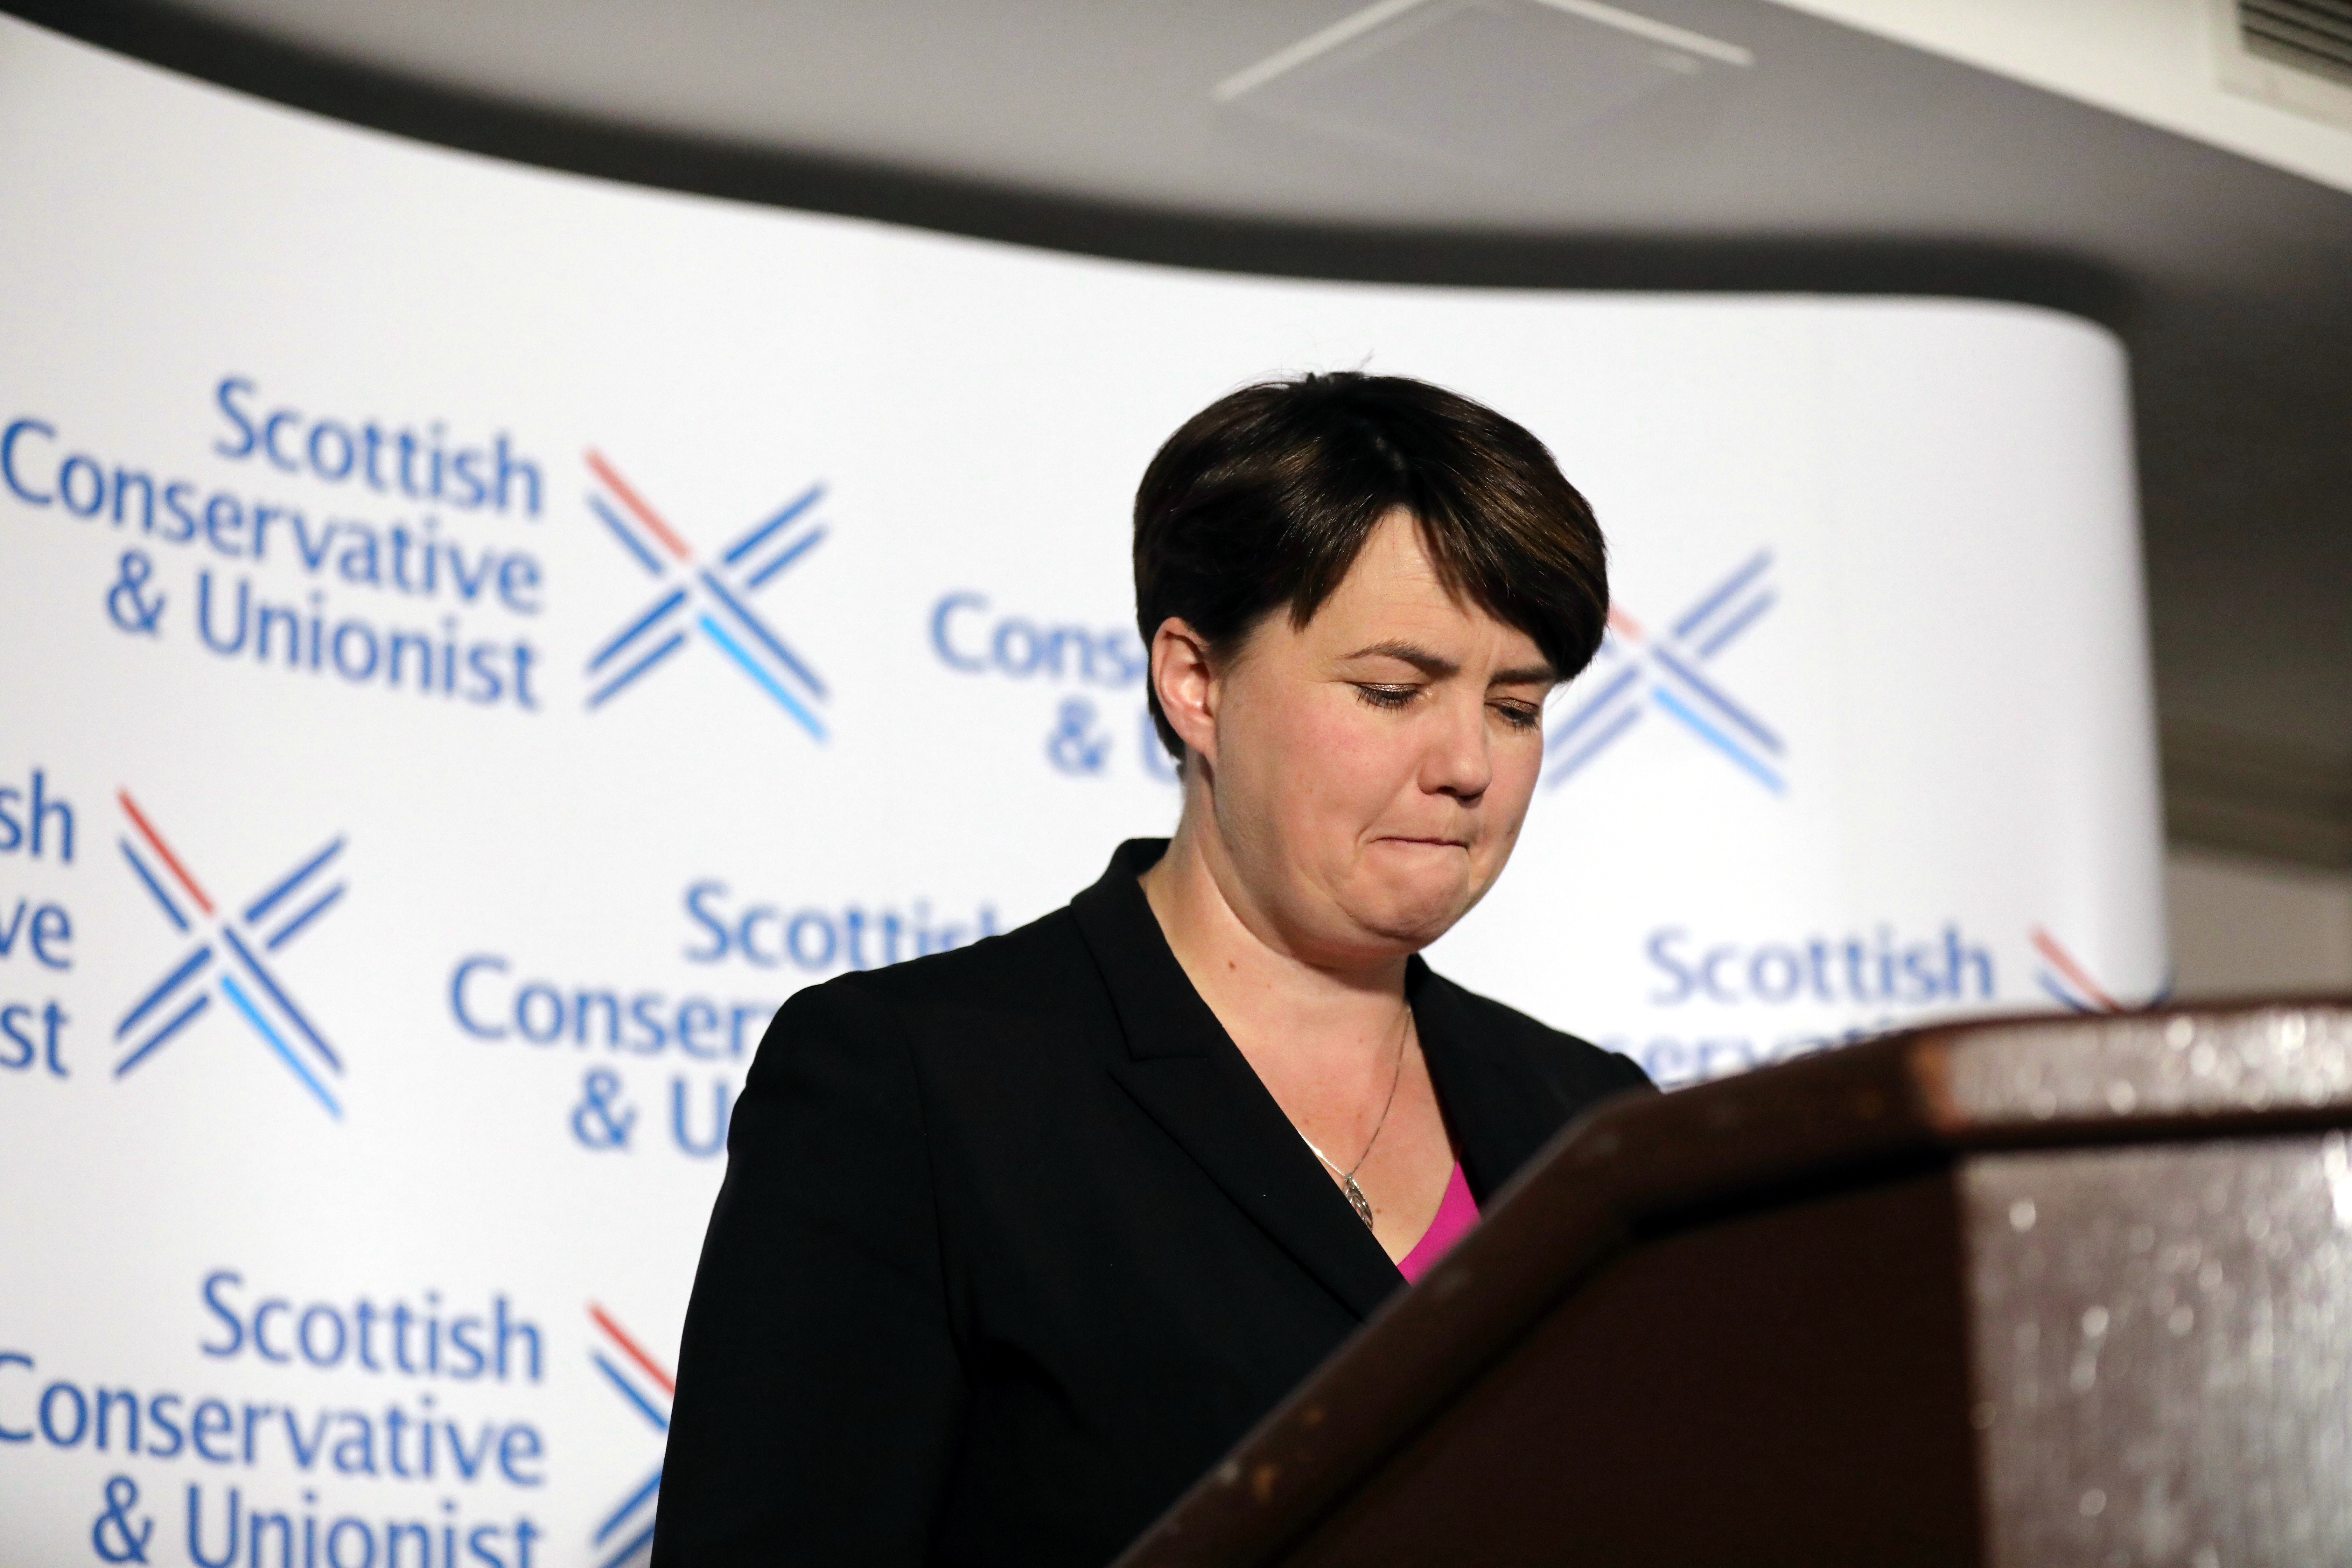 """Leader of the Scottish Conservatives Ruth Davidson during a press conference at Holyrood Hotel in Edinburgh, following her announcement that she has resigned as leader of the Scottish Conservatives, saying holding the post had been the """"privilege of my life""""."""